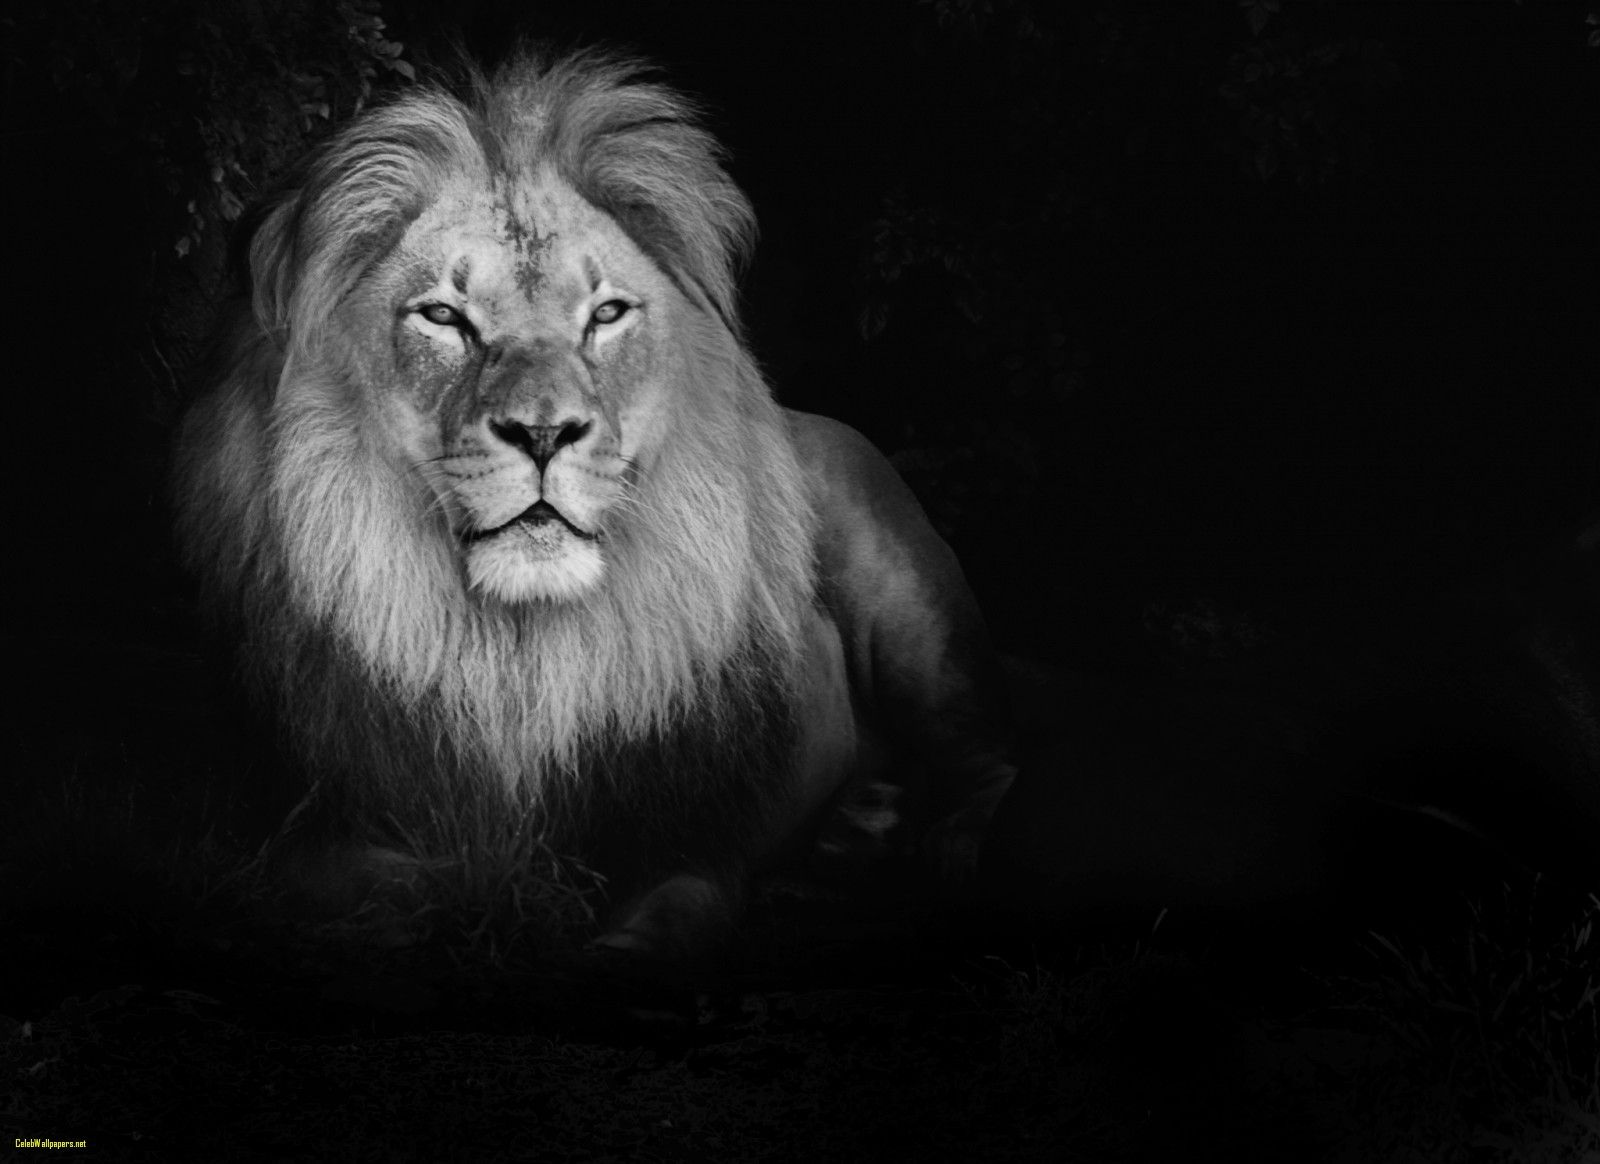 White Lion Wallpaper 27 - 1600 X 1164 | stmed.net